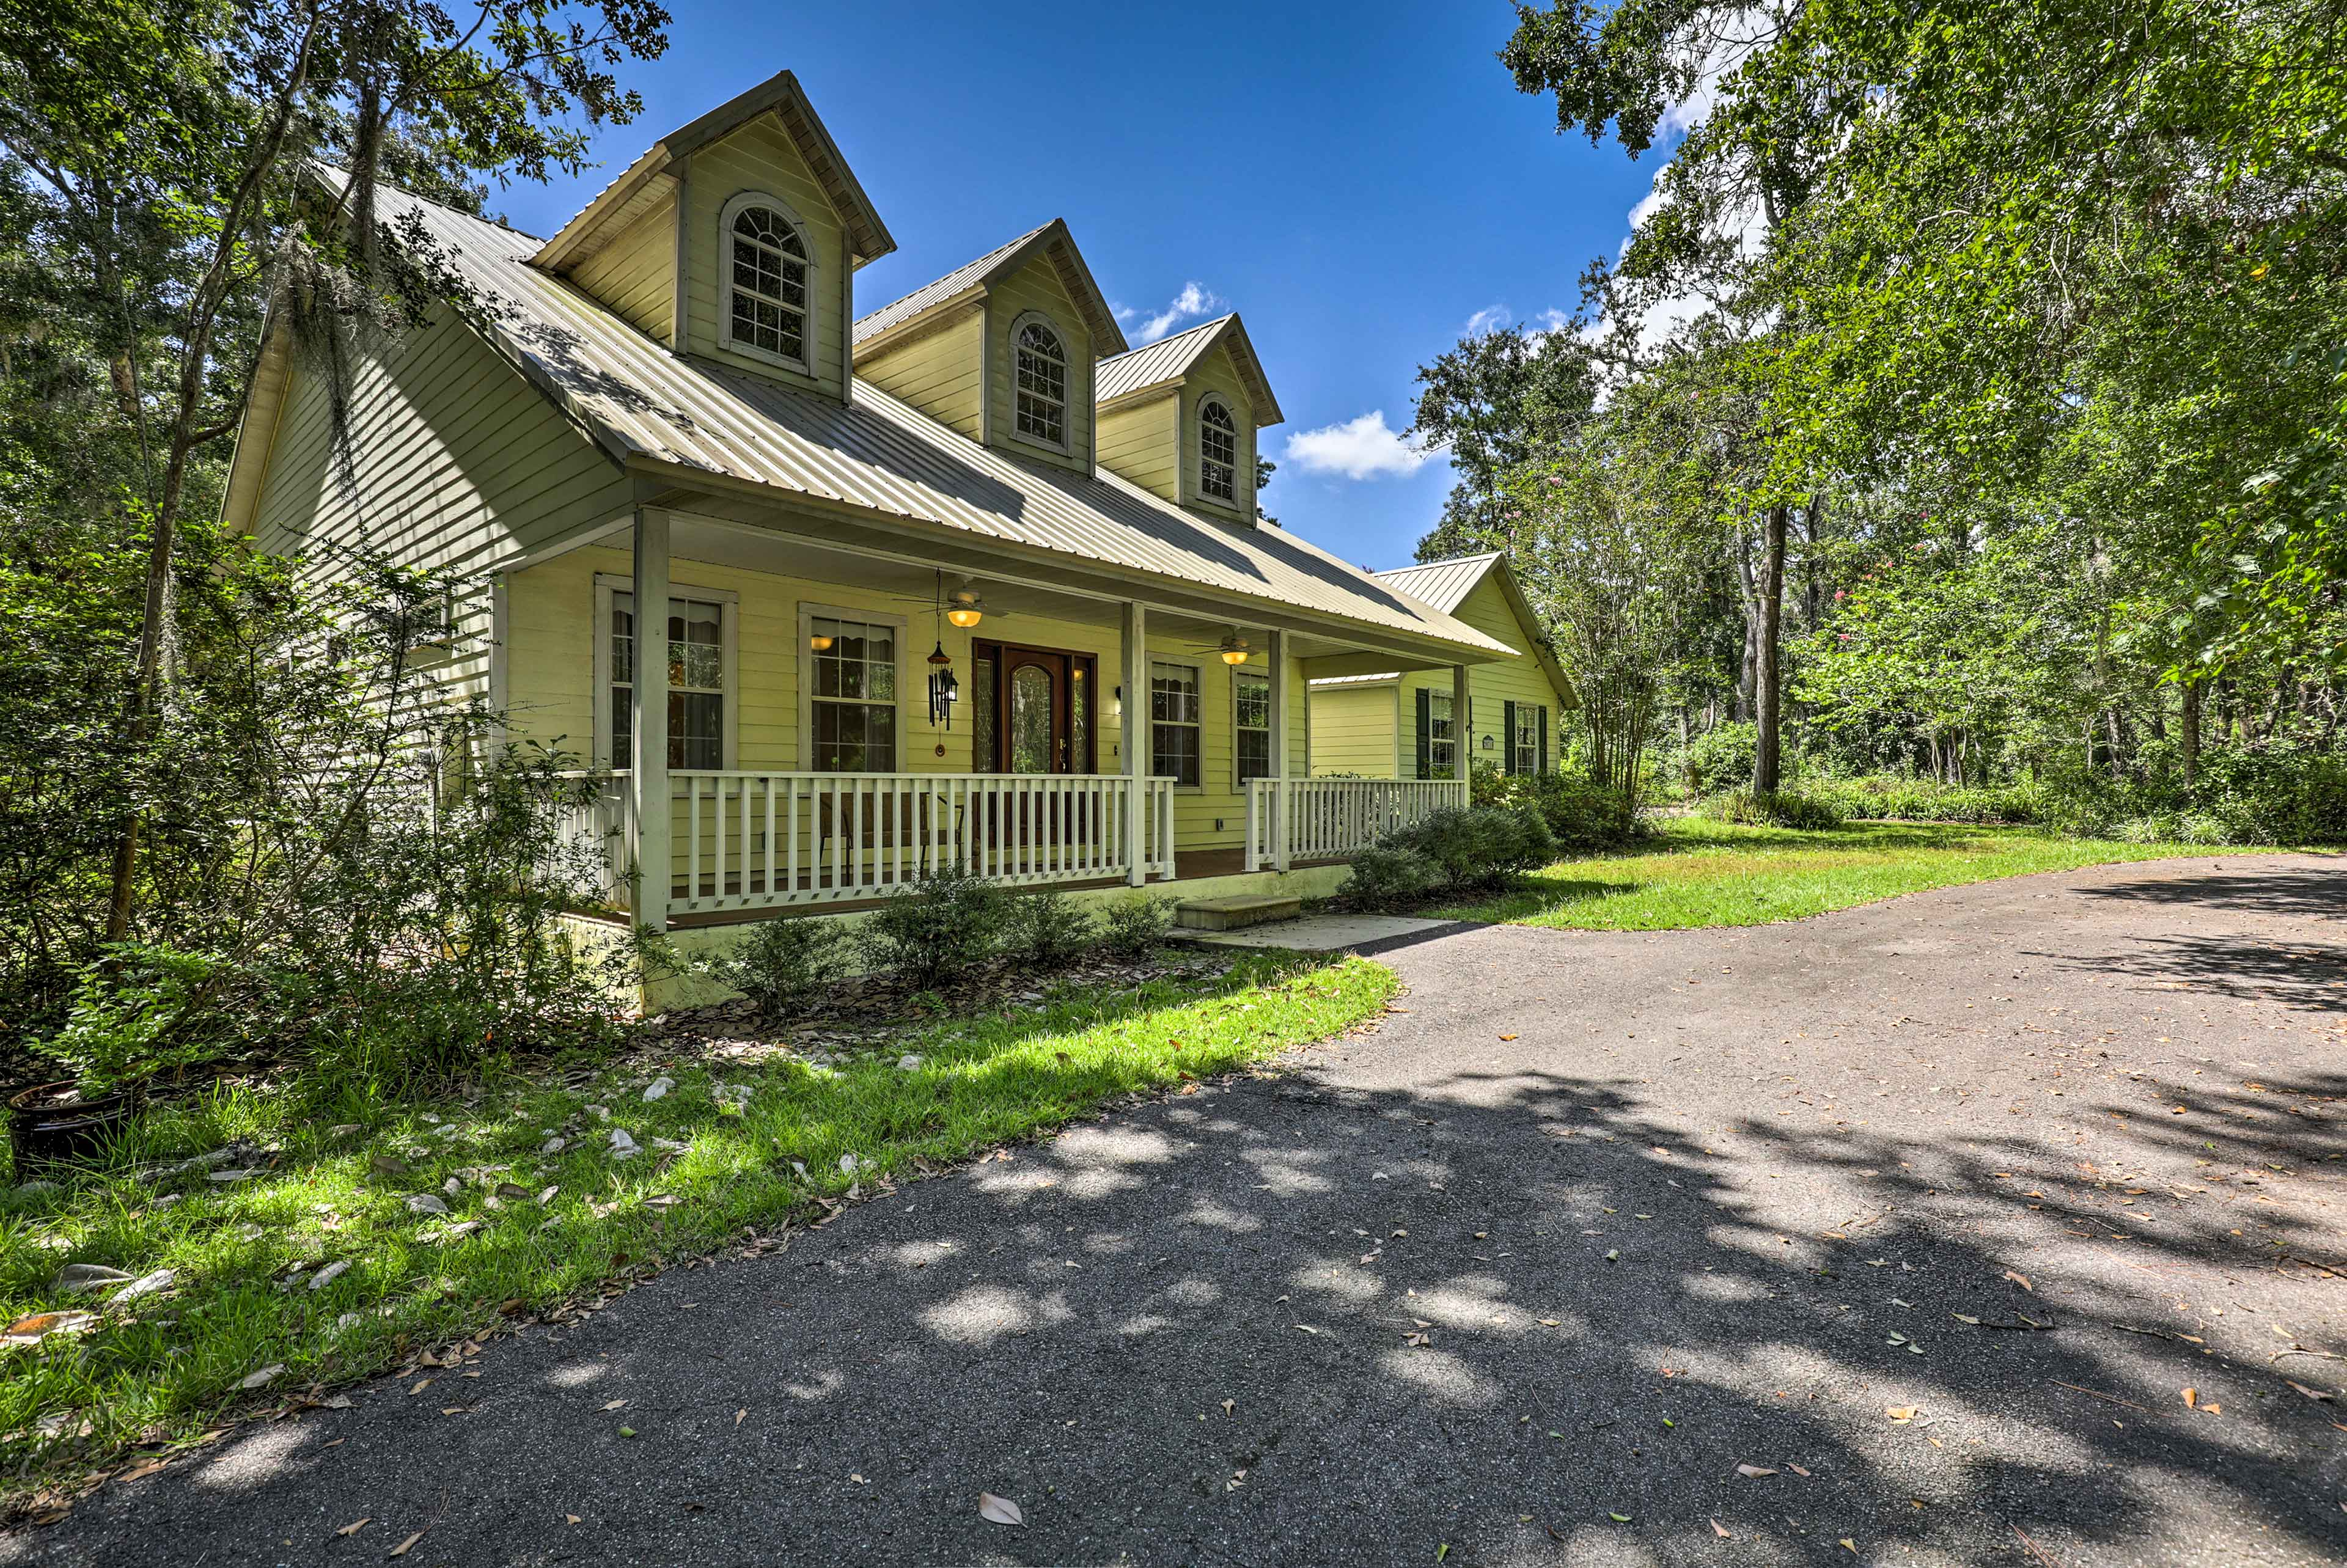 You'll love this centrally located spot nestled in a quiet neighborhood.